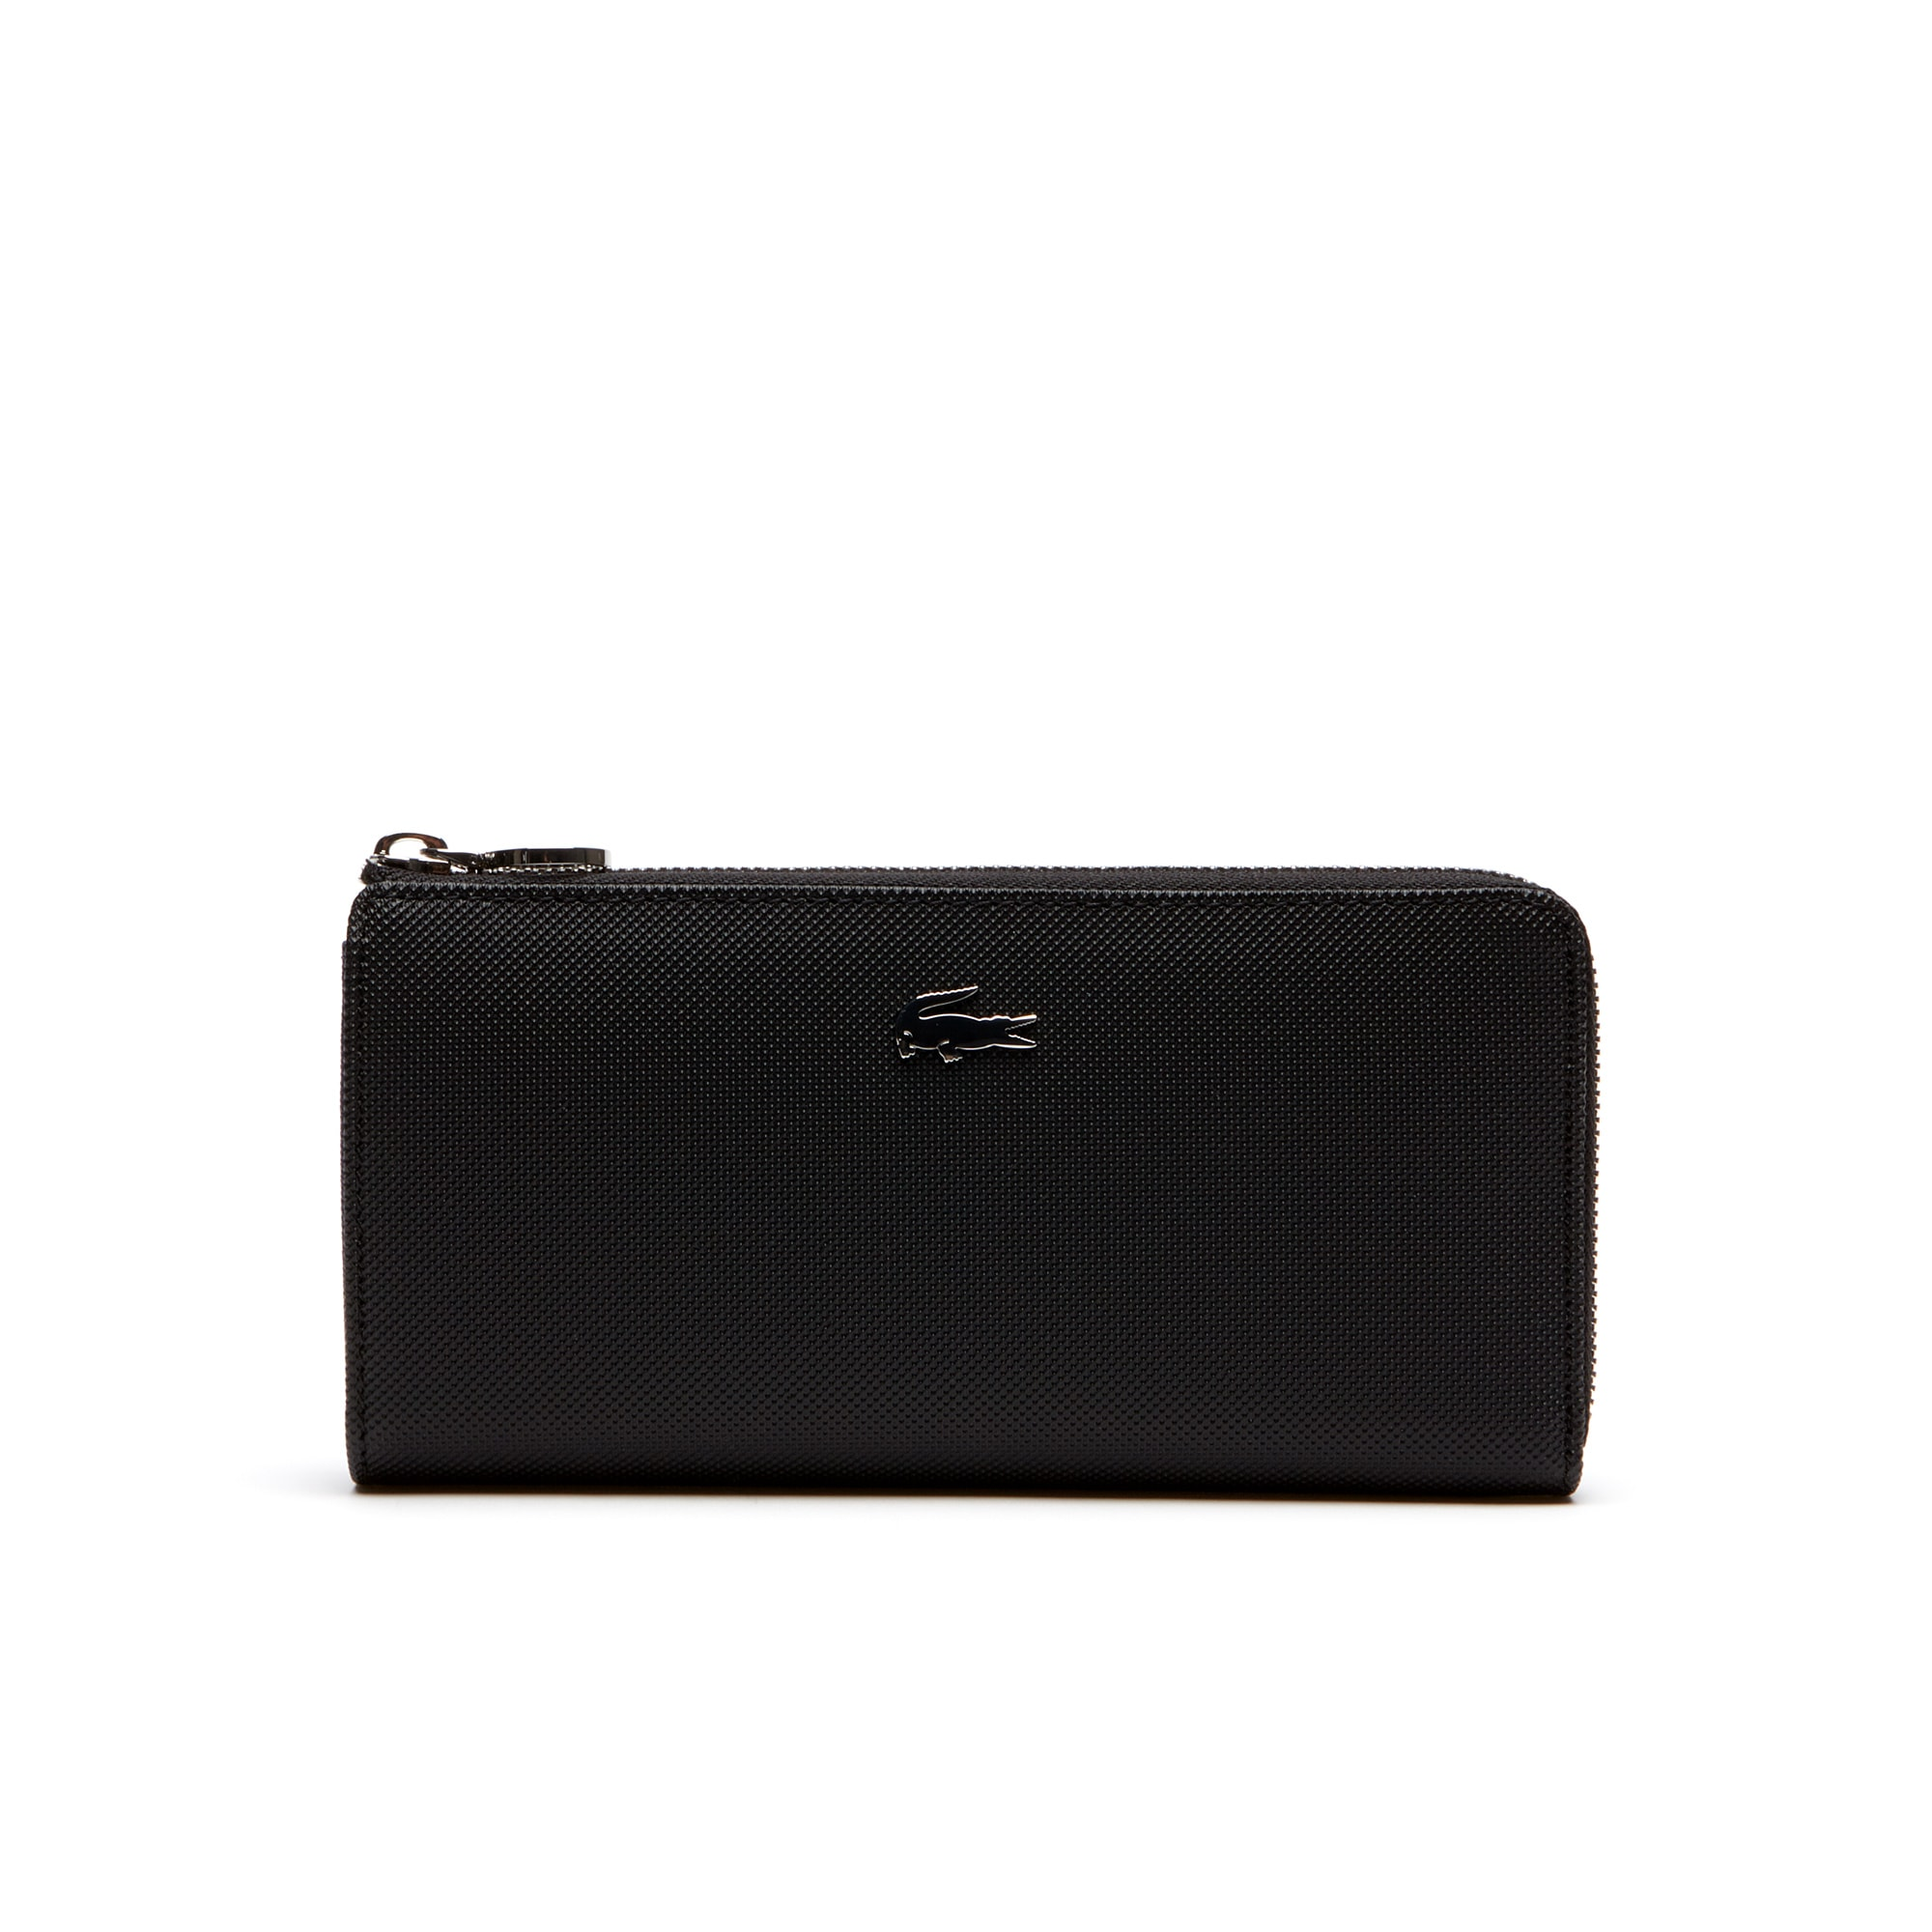 Women's Daily Classic Fine Piqué Grains Zip Wallet